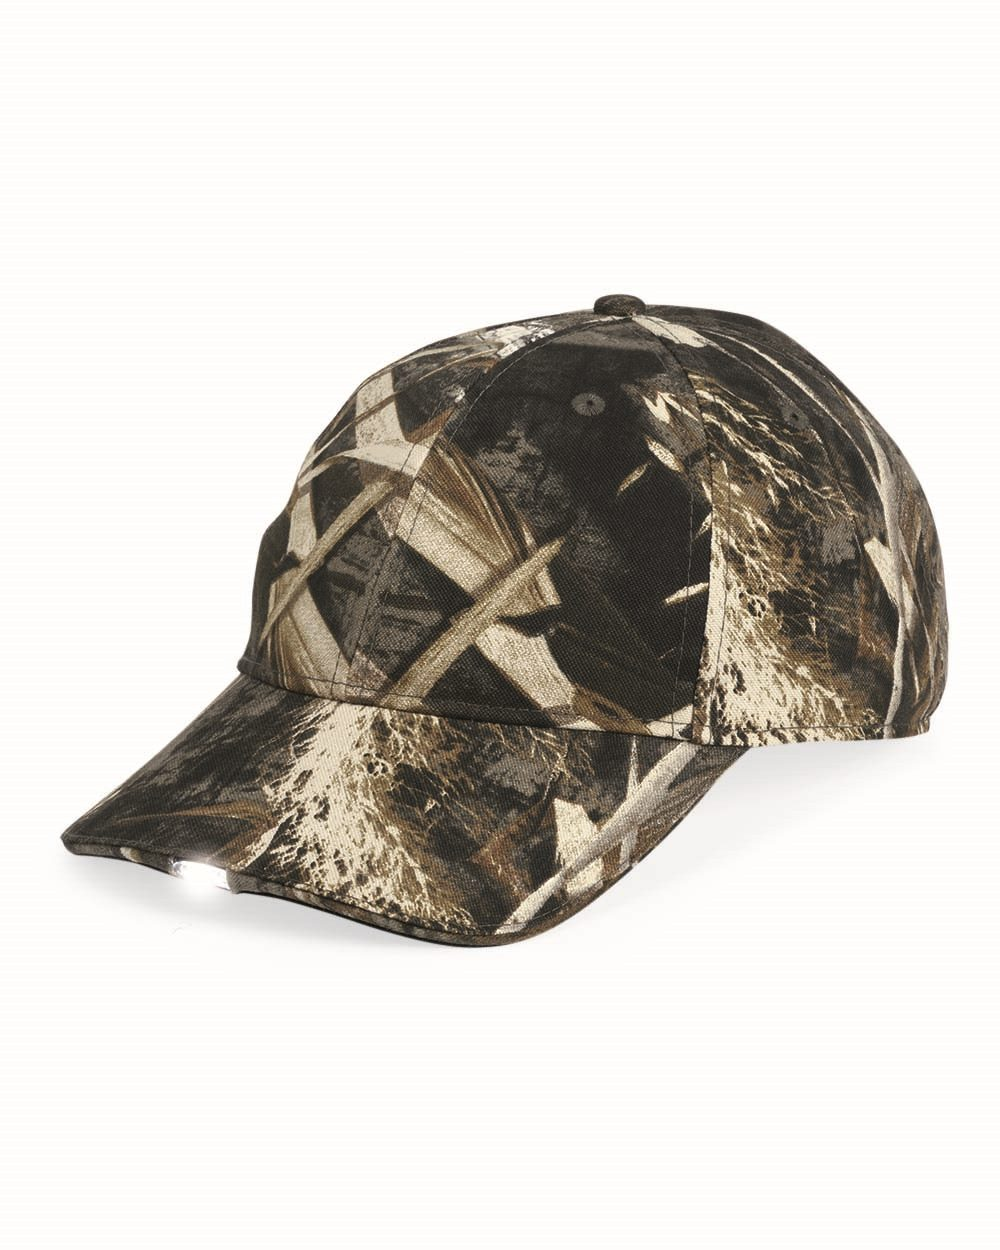 Outdoor Cap HIB602 - Hibeam Lighted Camo Cap